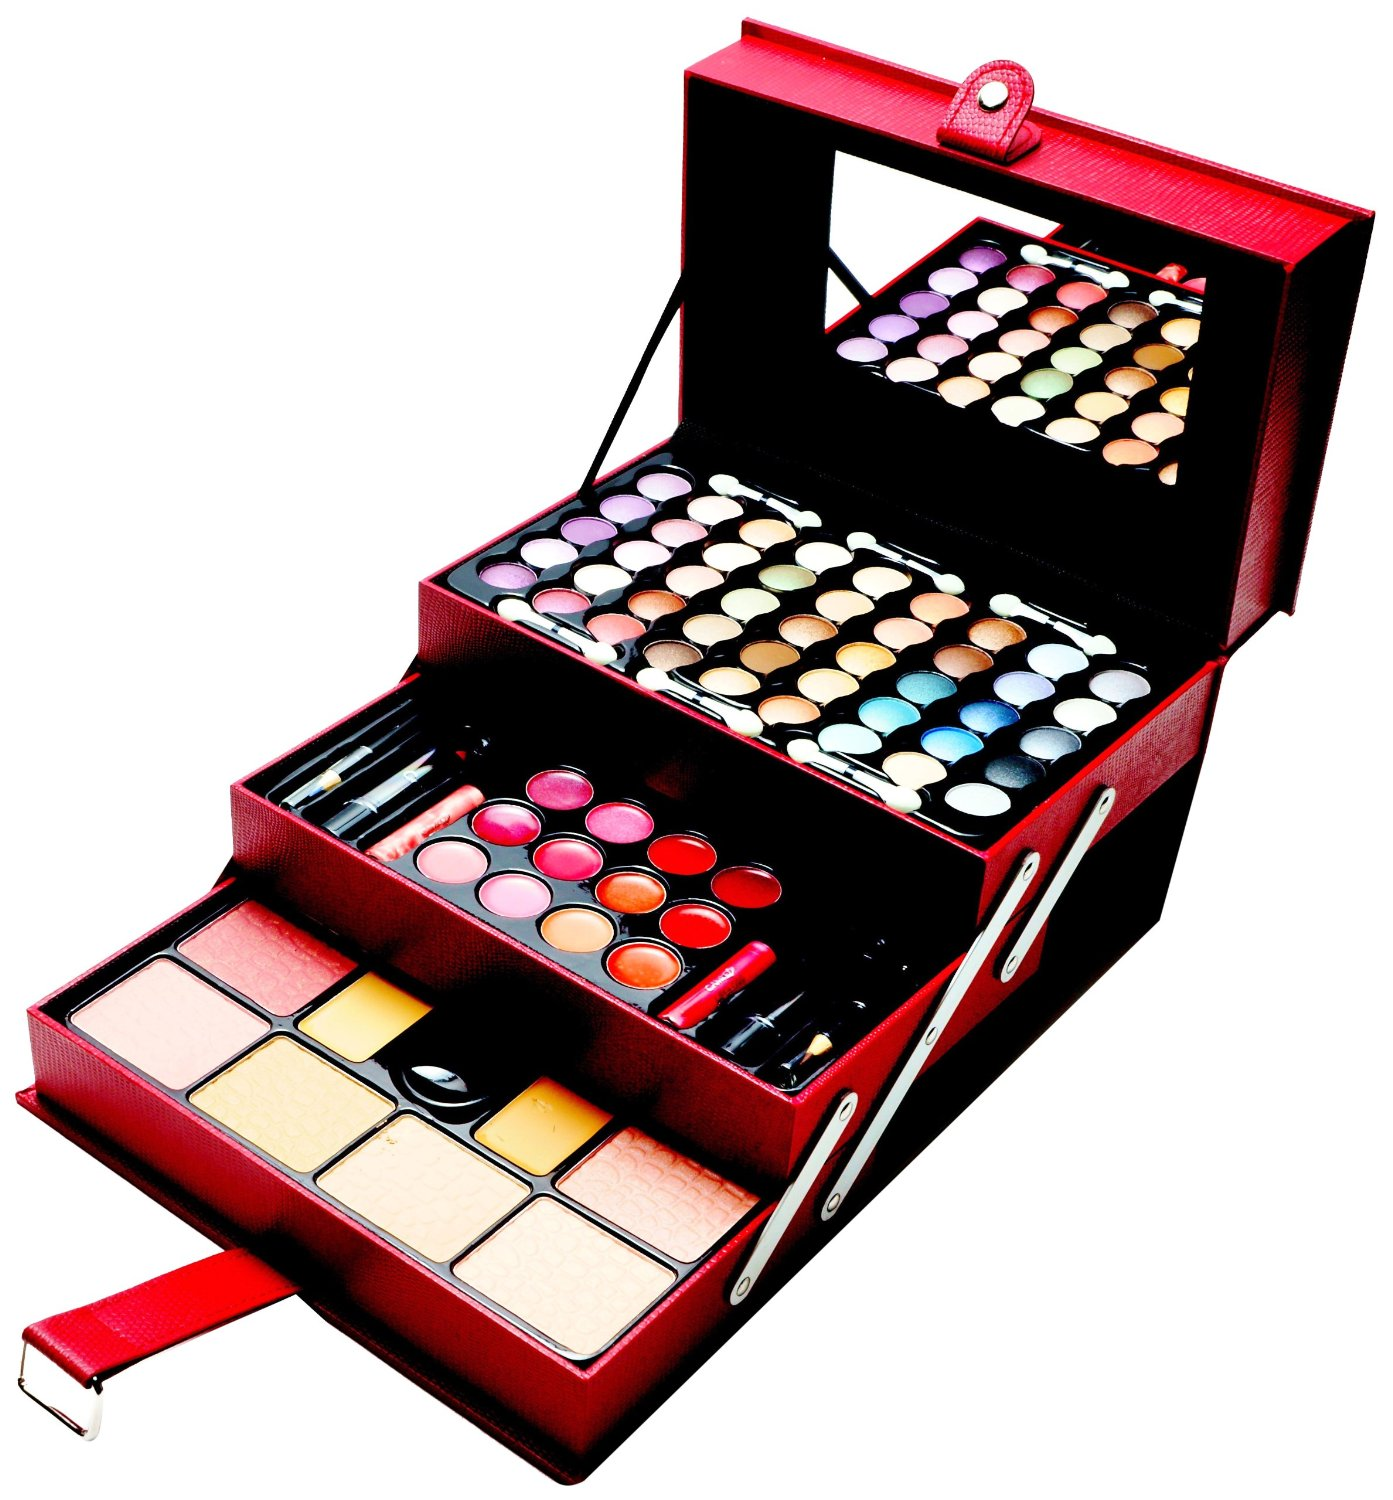 Cameo All In One Makeup Kit (Eyeshadow Palette Blushes Powder And More) Holiday Exclusive